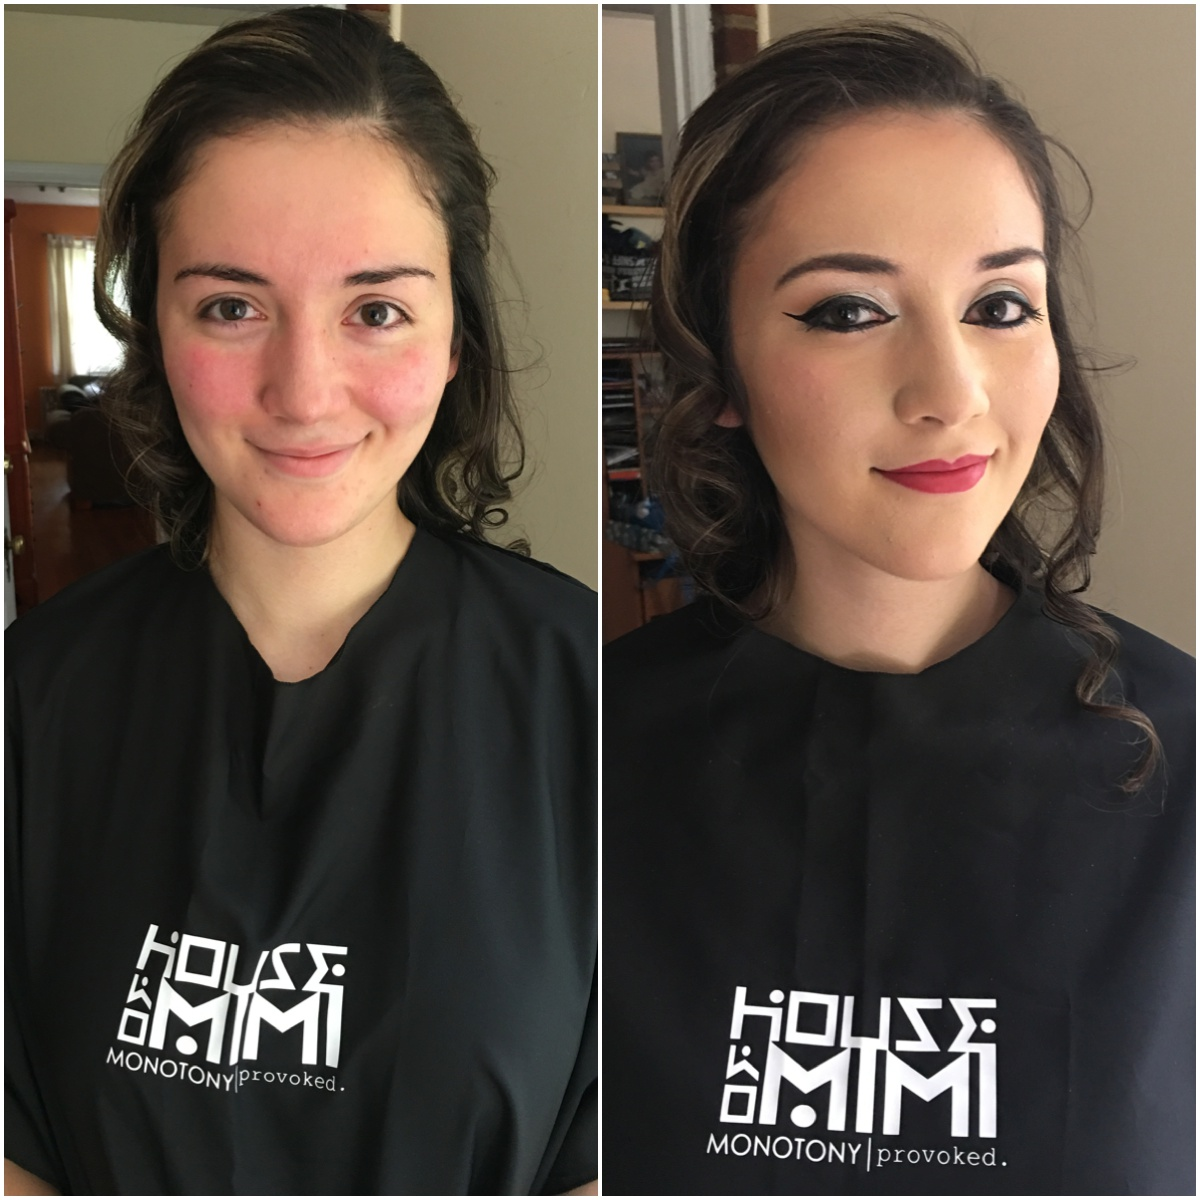 Full-Face Prom Application.